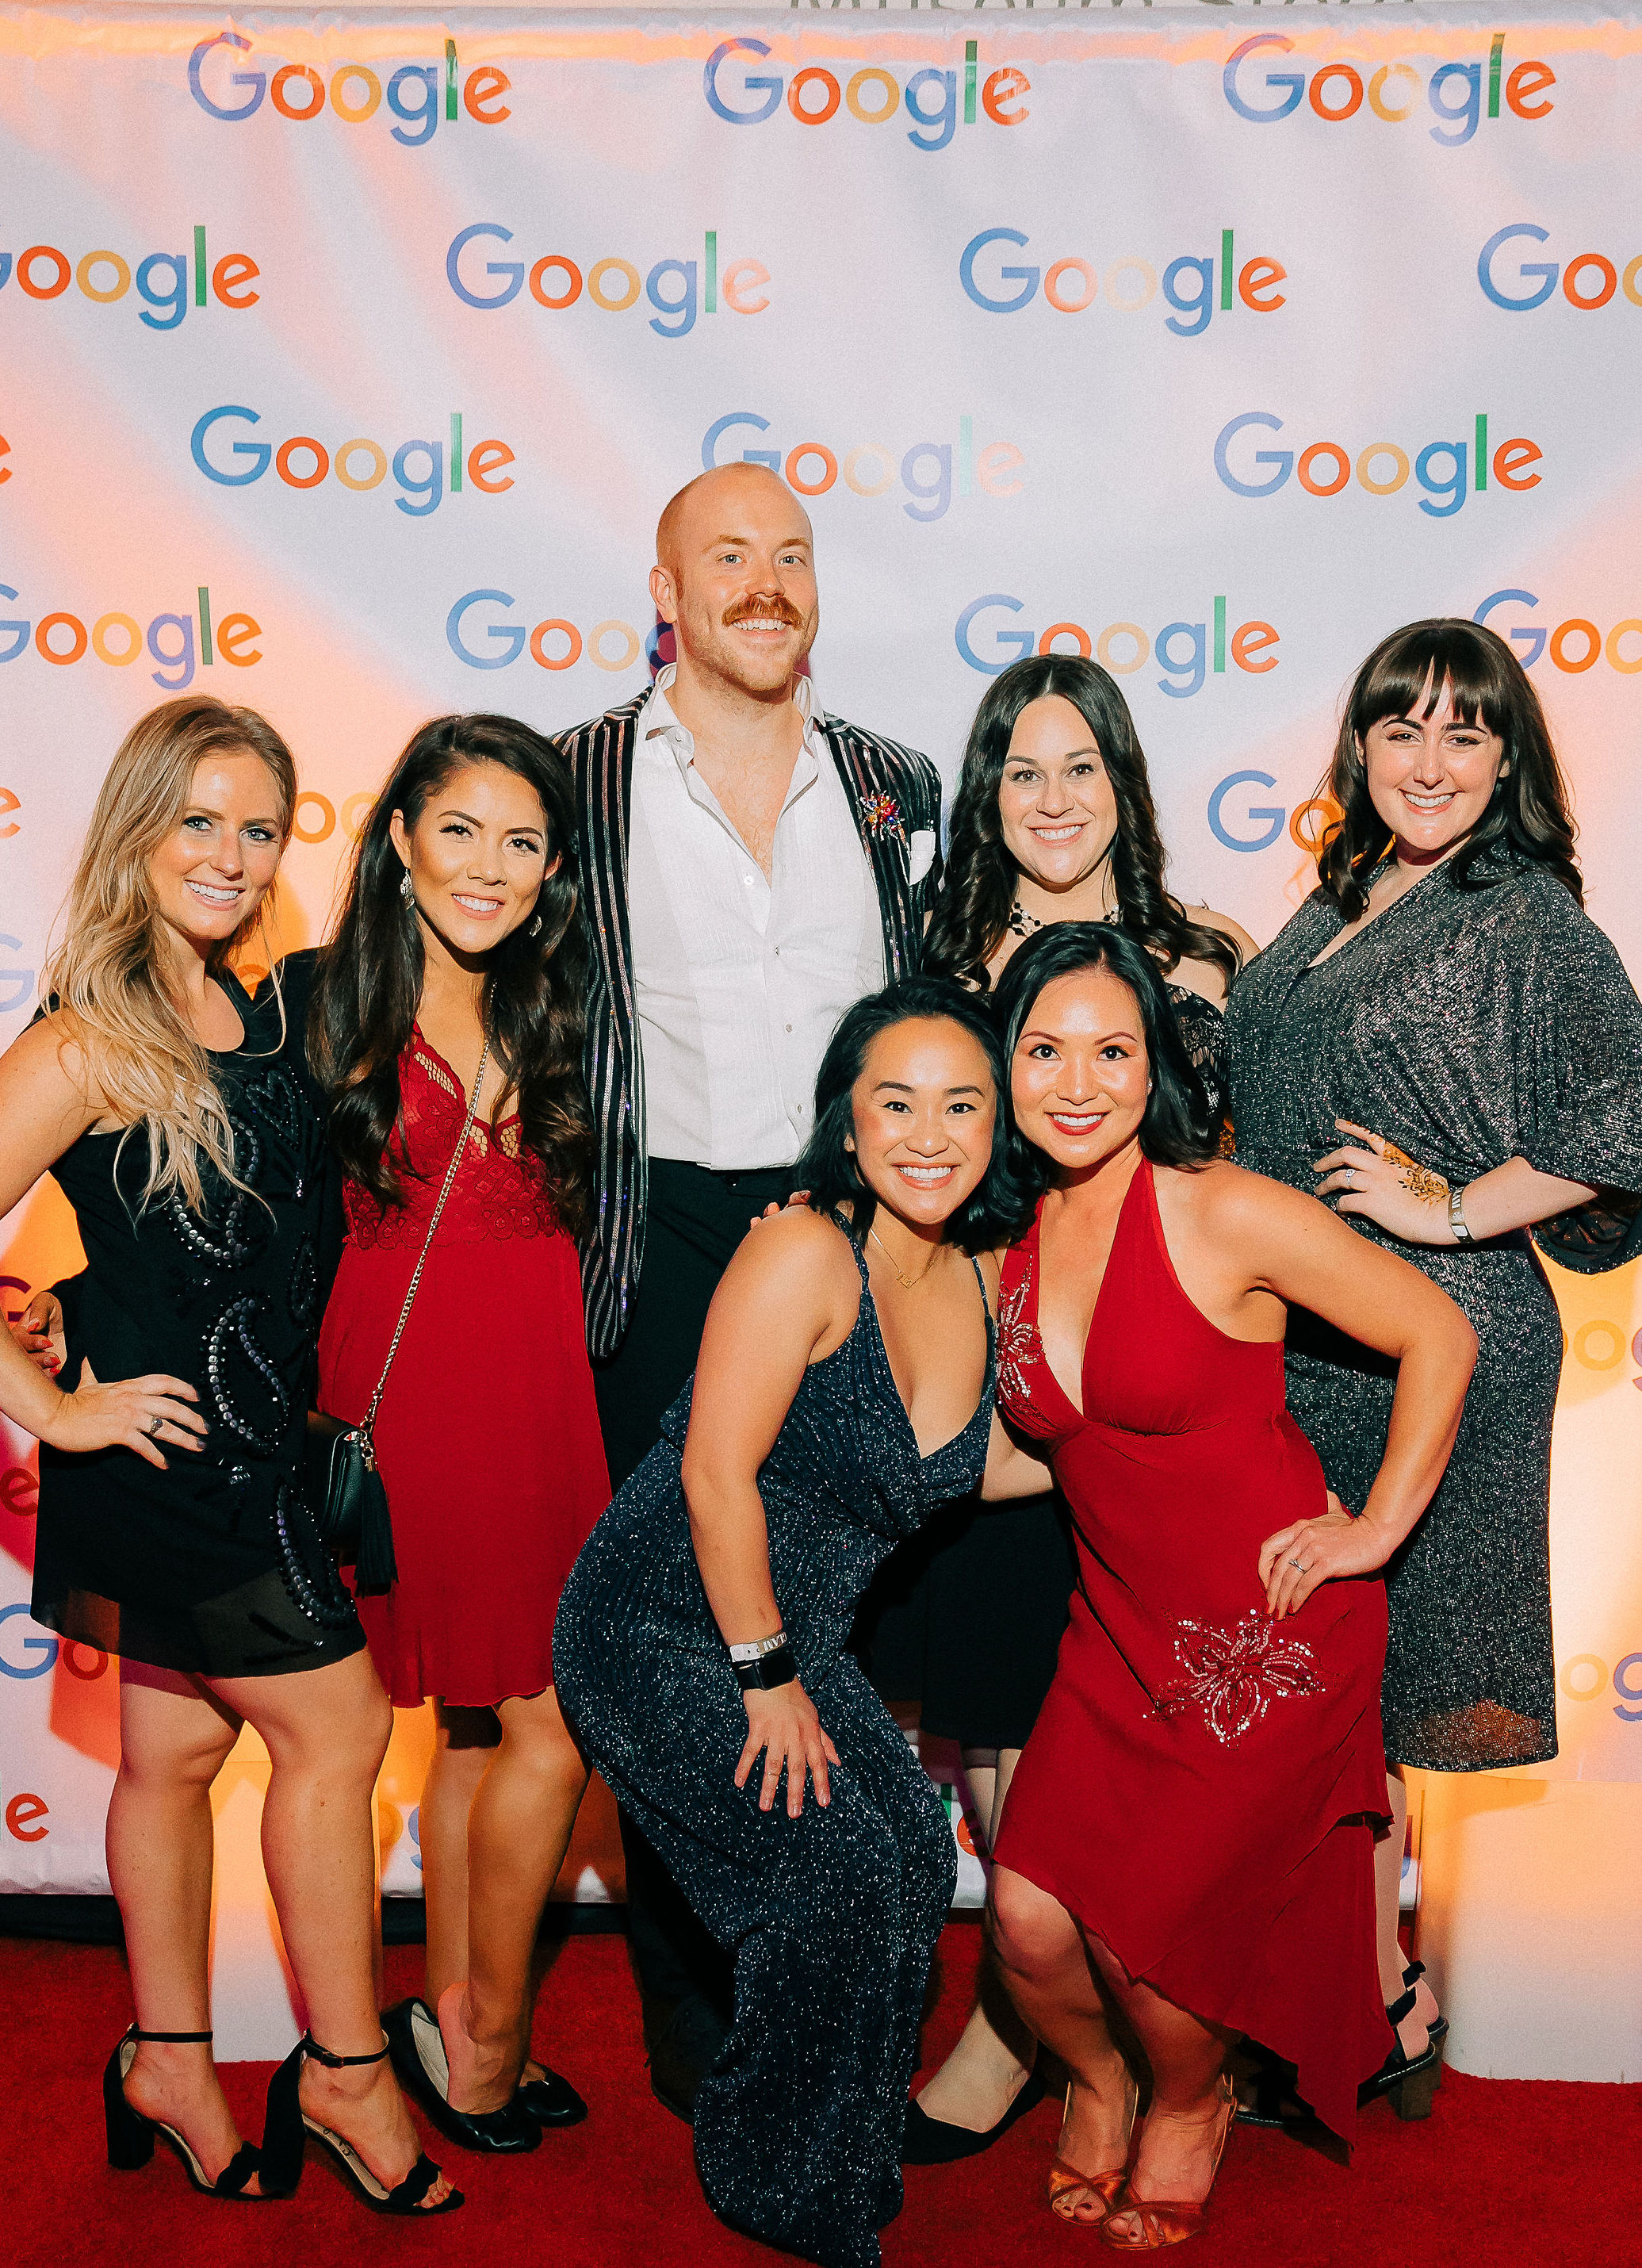 google-cloud-sf-moma-holiday-party